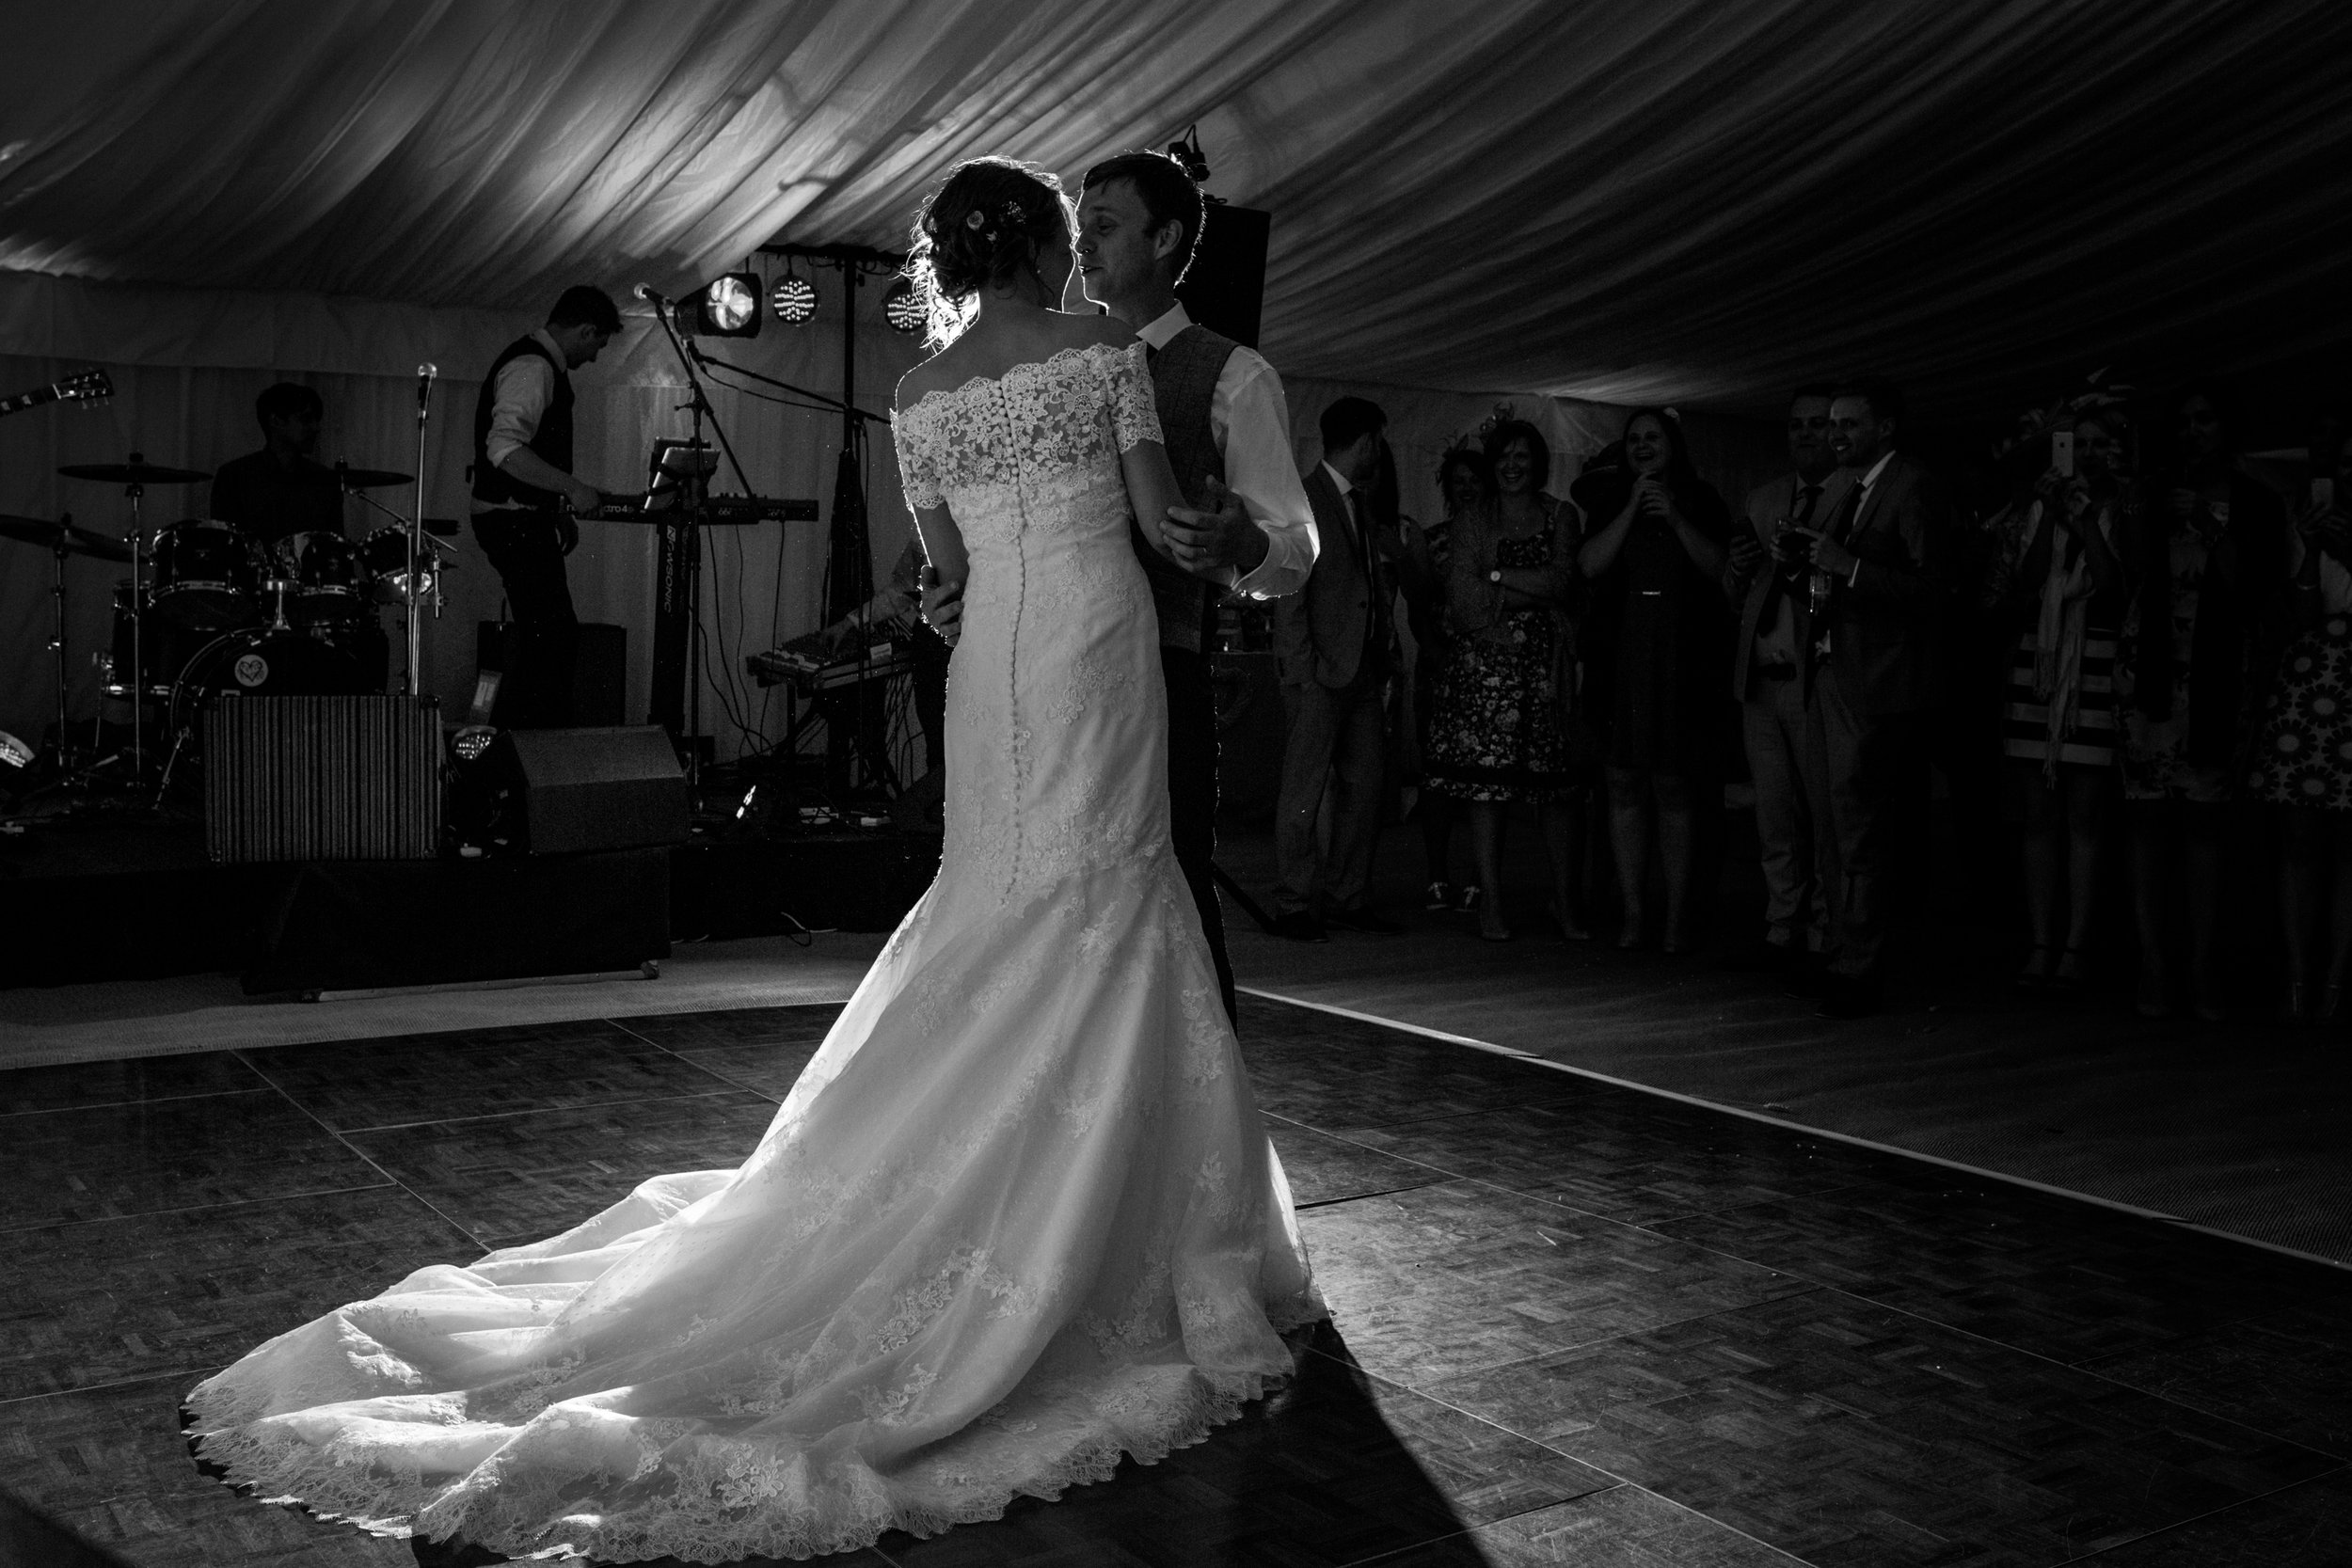 First dance, black and white documentary wedding photography